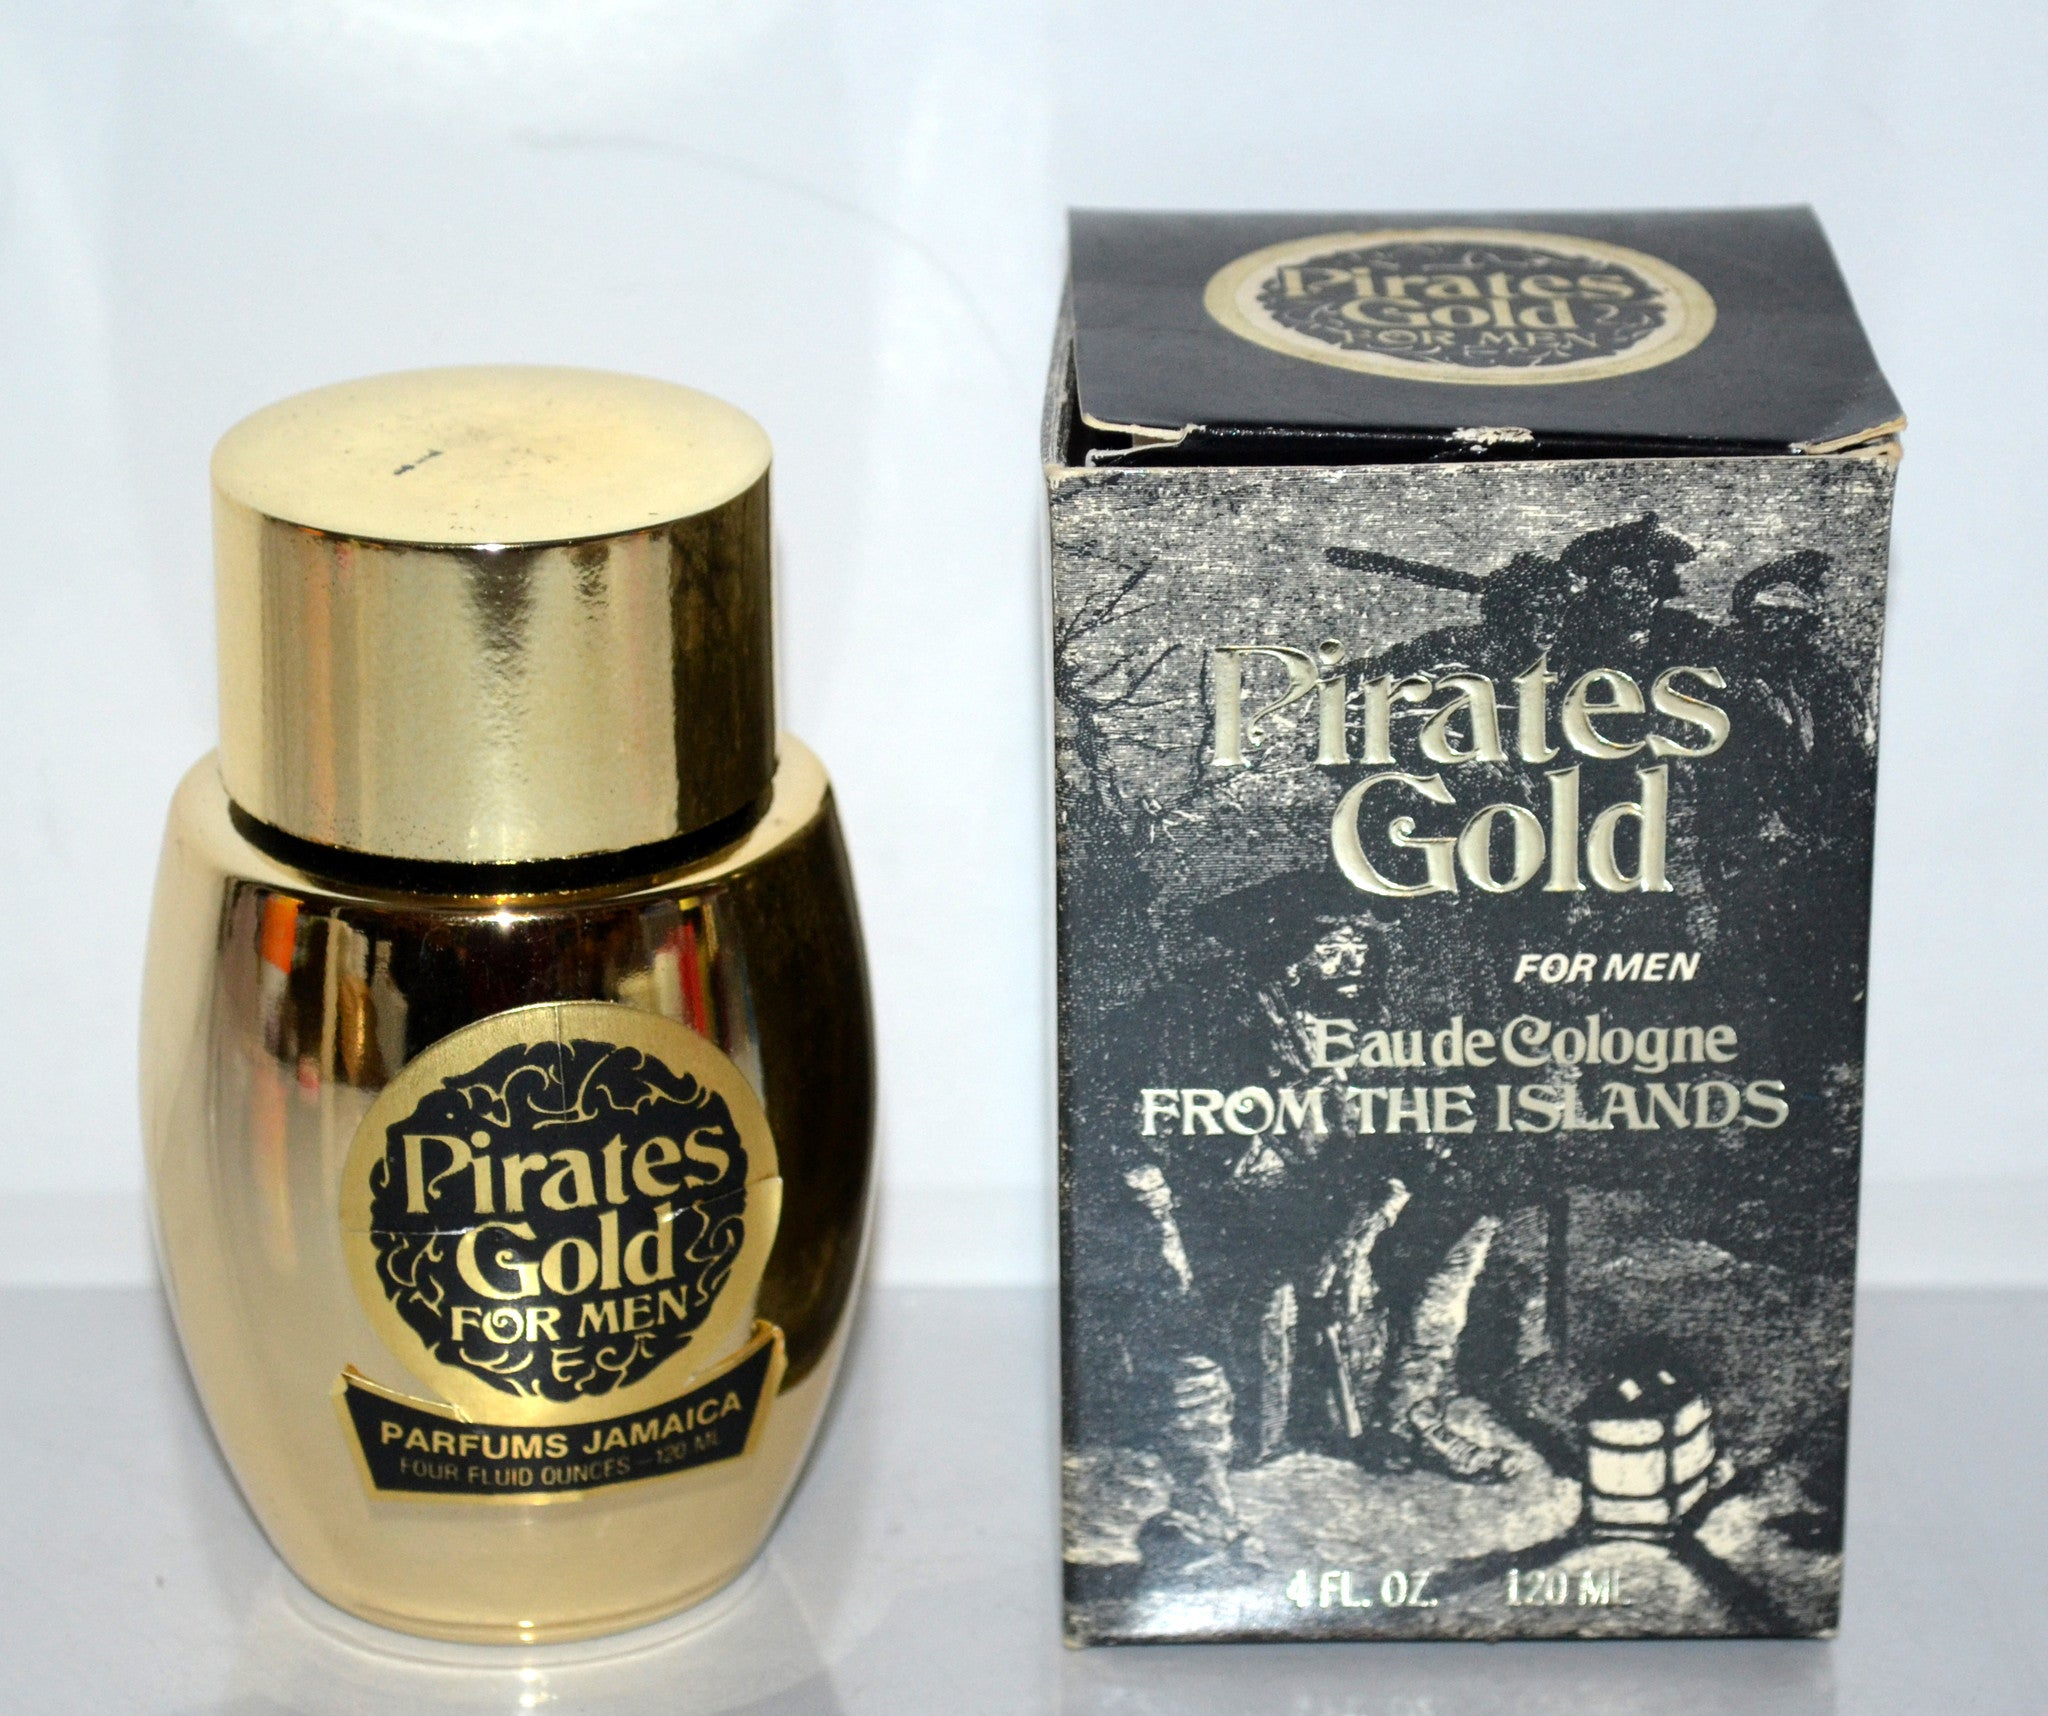 The Islands Pirates Gold For Men Eau De Cologne